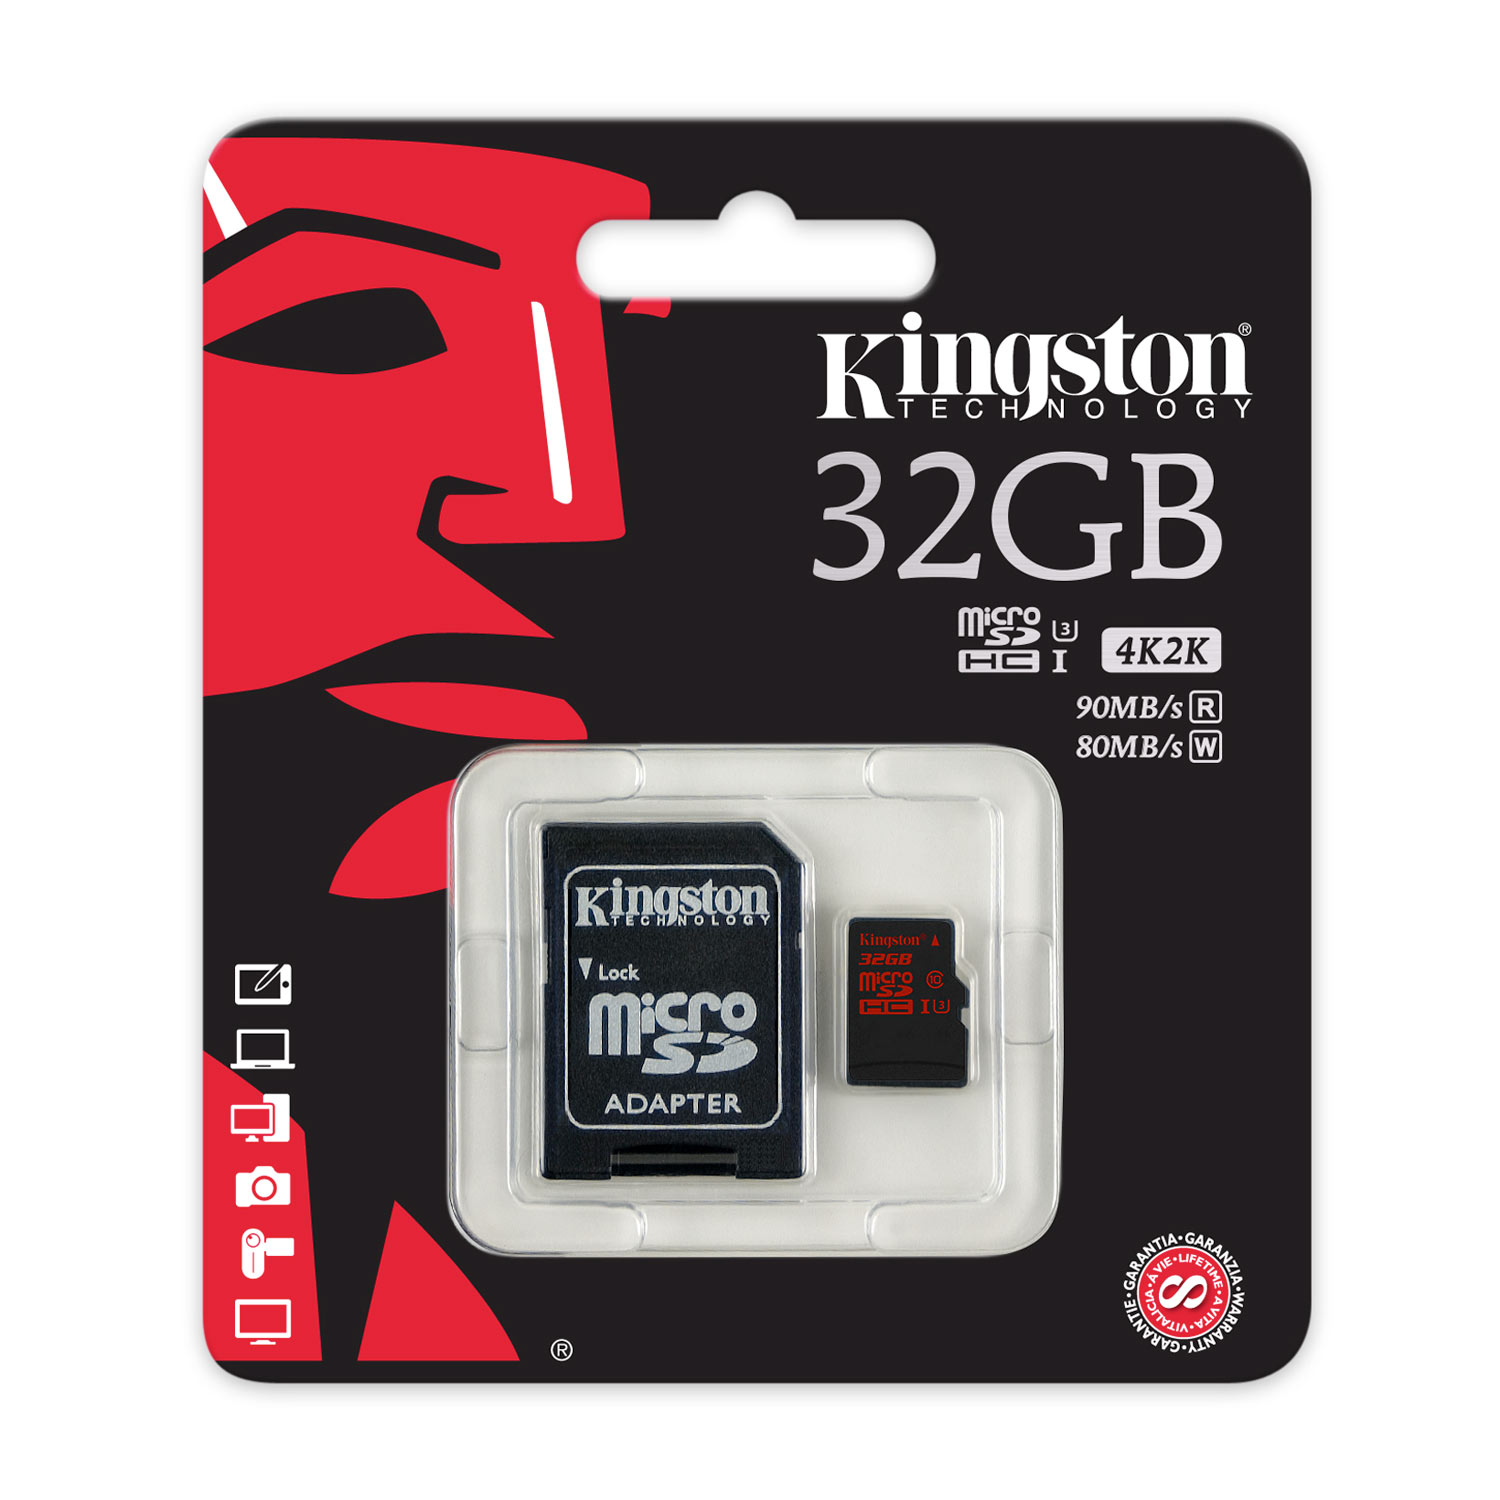 Kingston Micro SDHC 32Go UHS-I U3 + Adapt. - Carte mémoire - 2